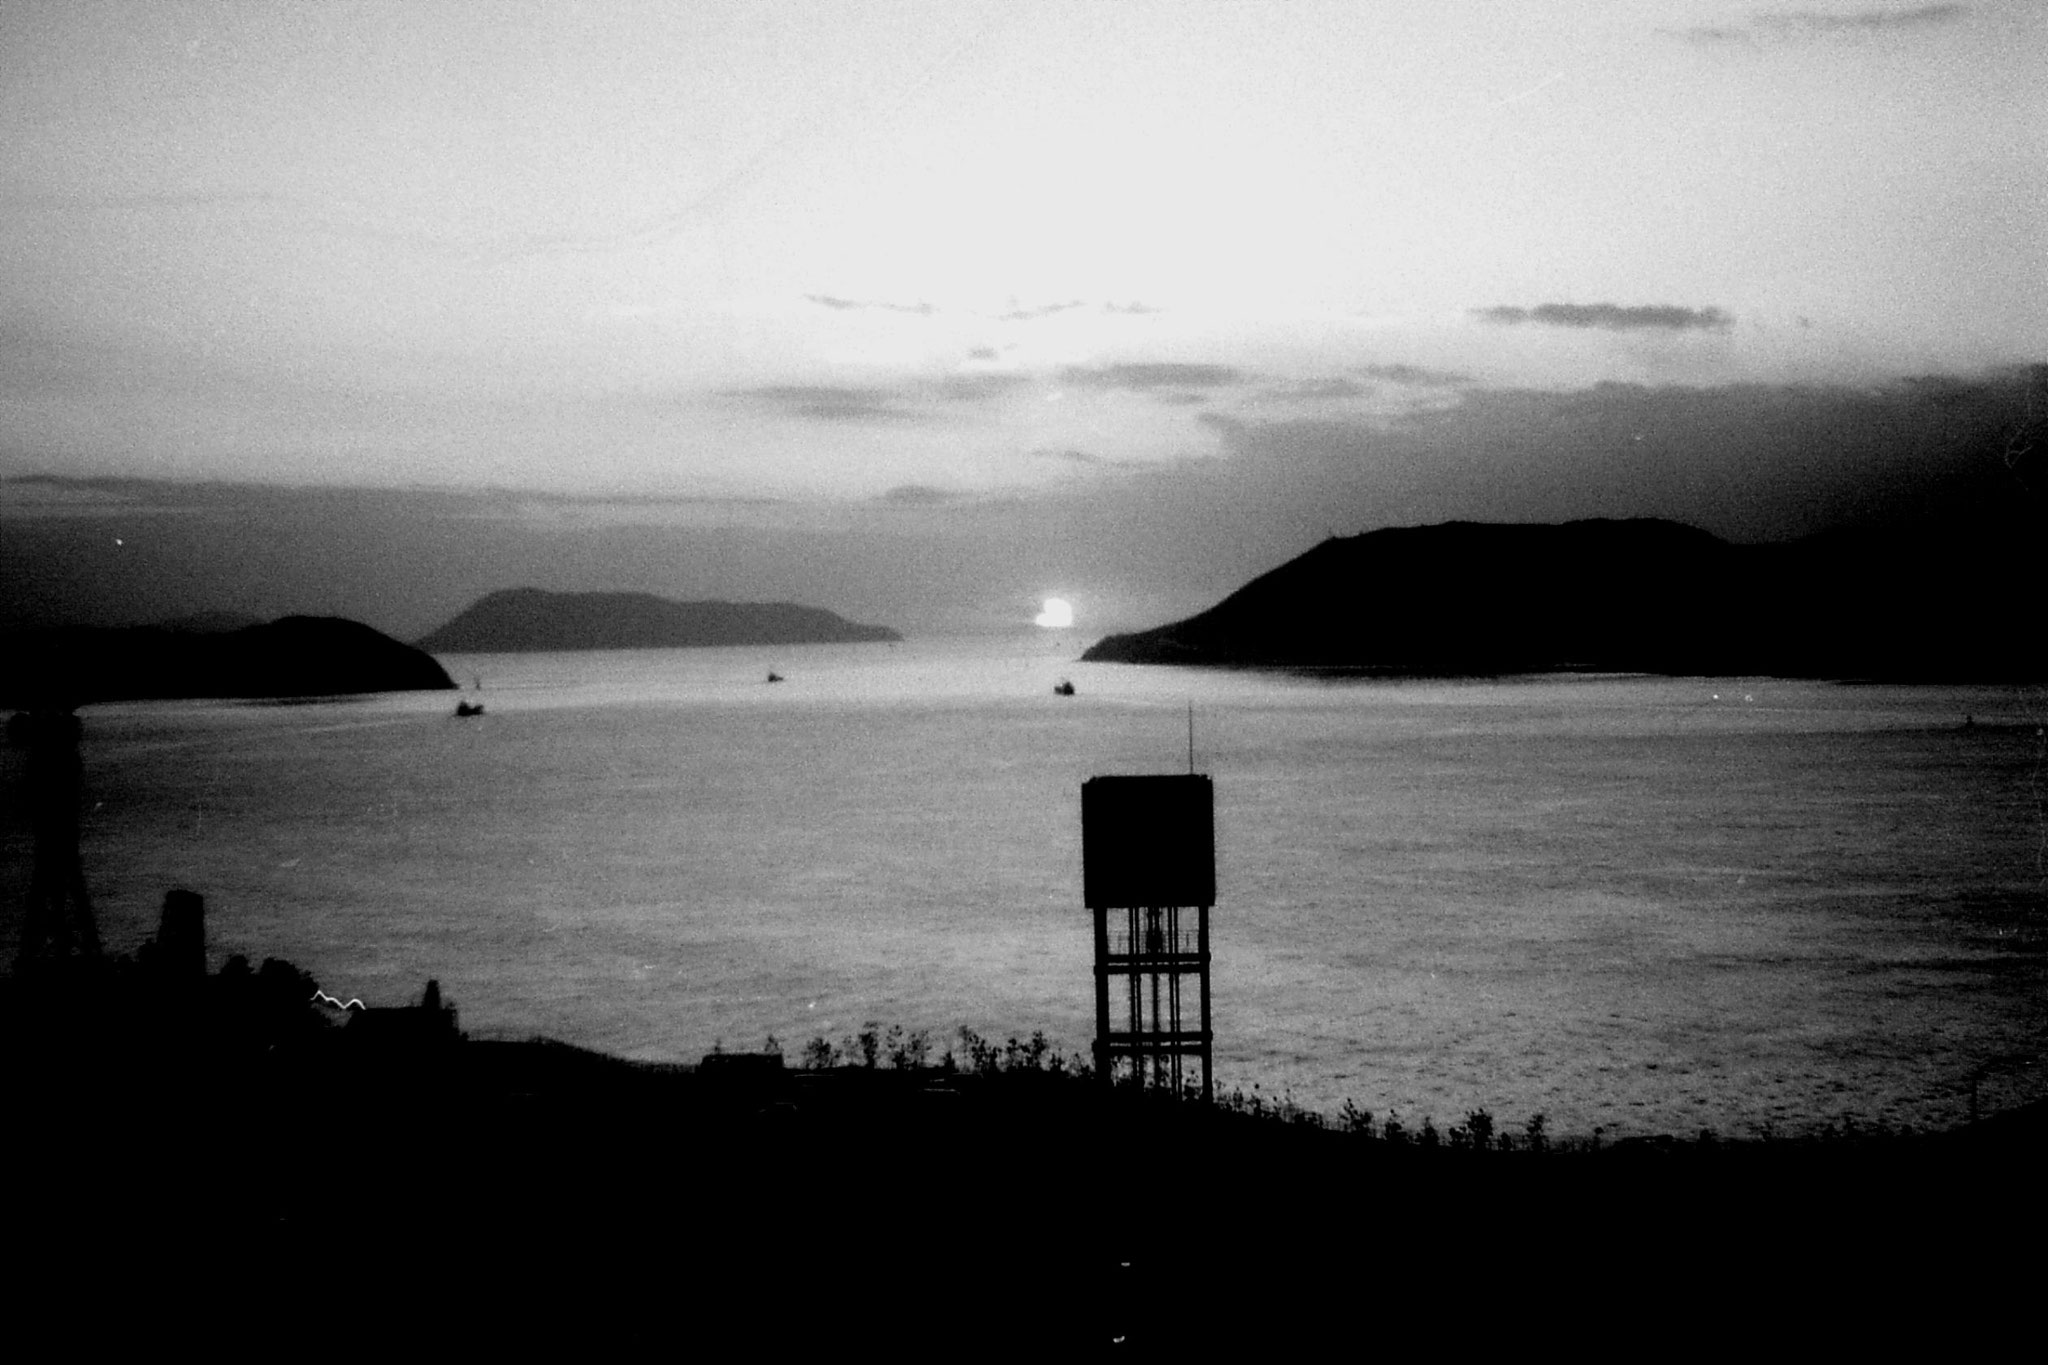 24/1/1989: 25:Seto Sea at sunset